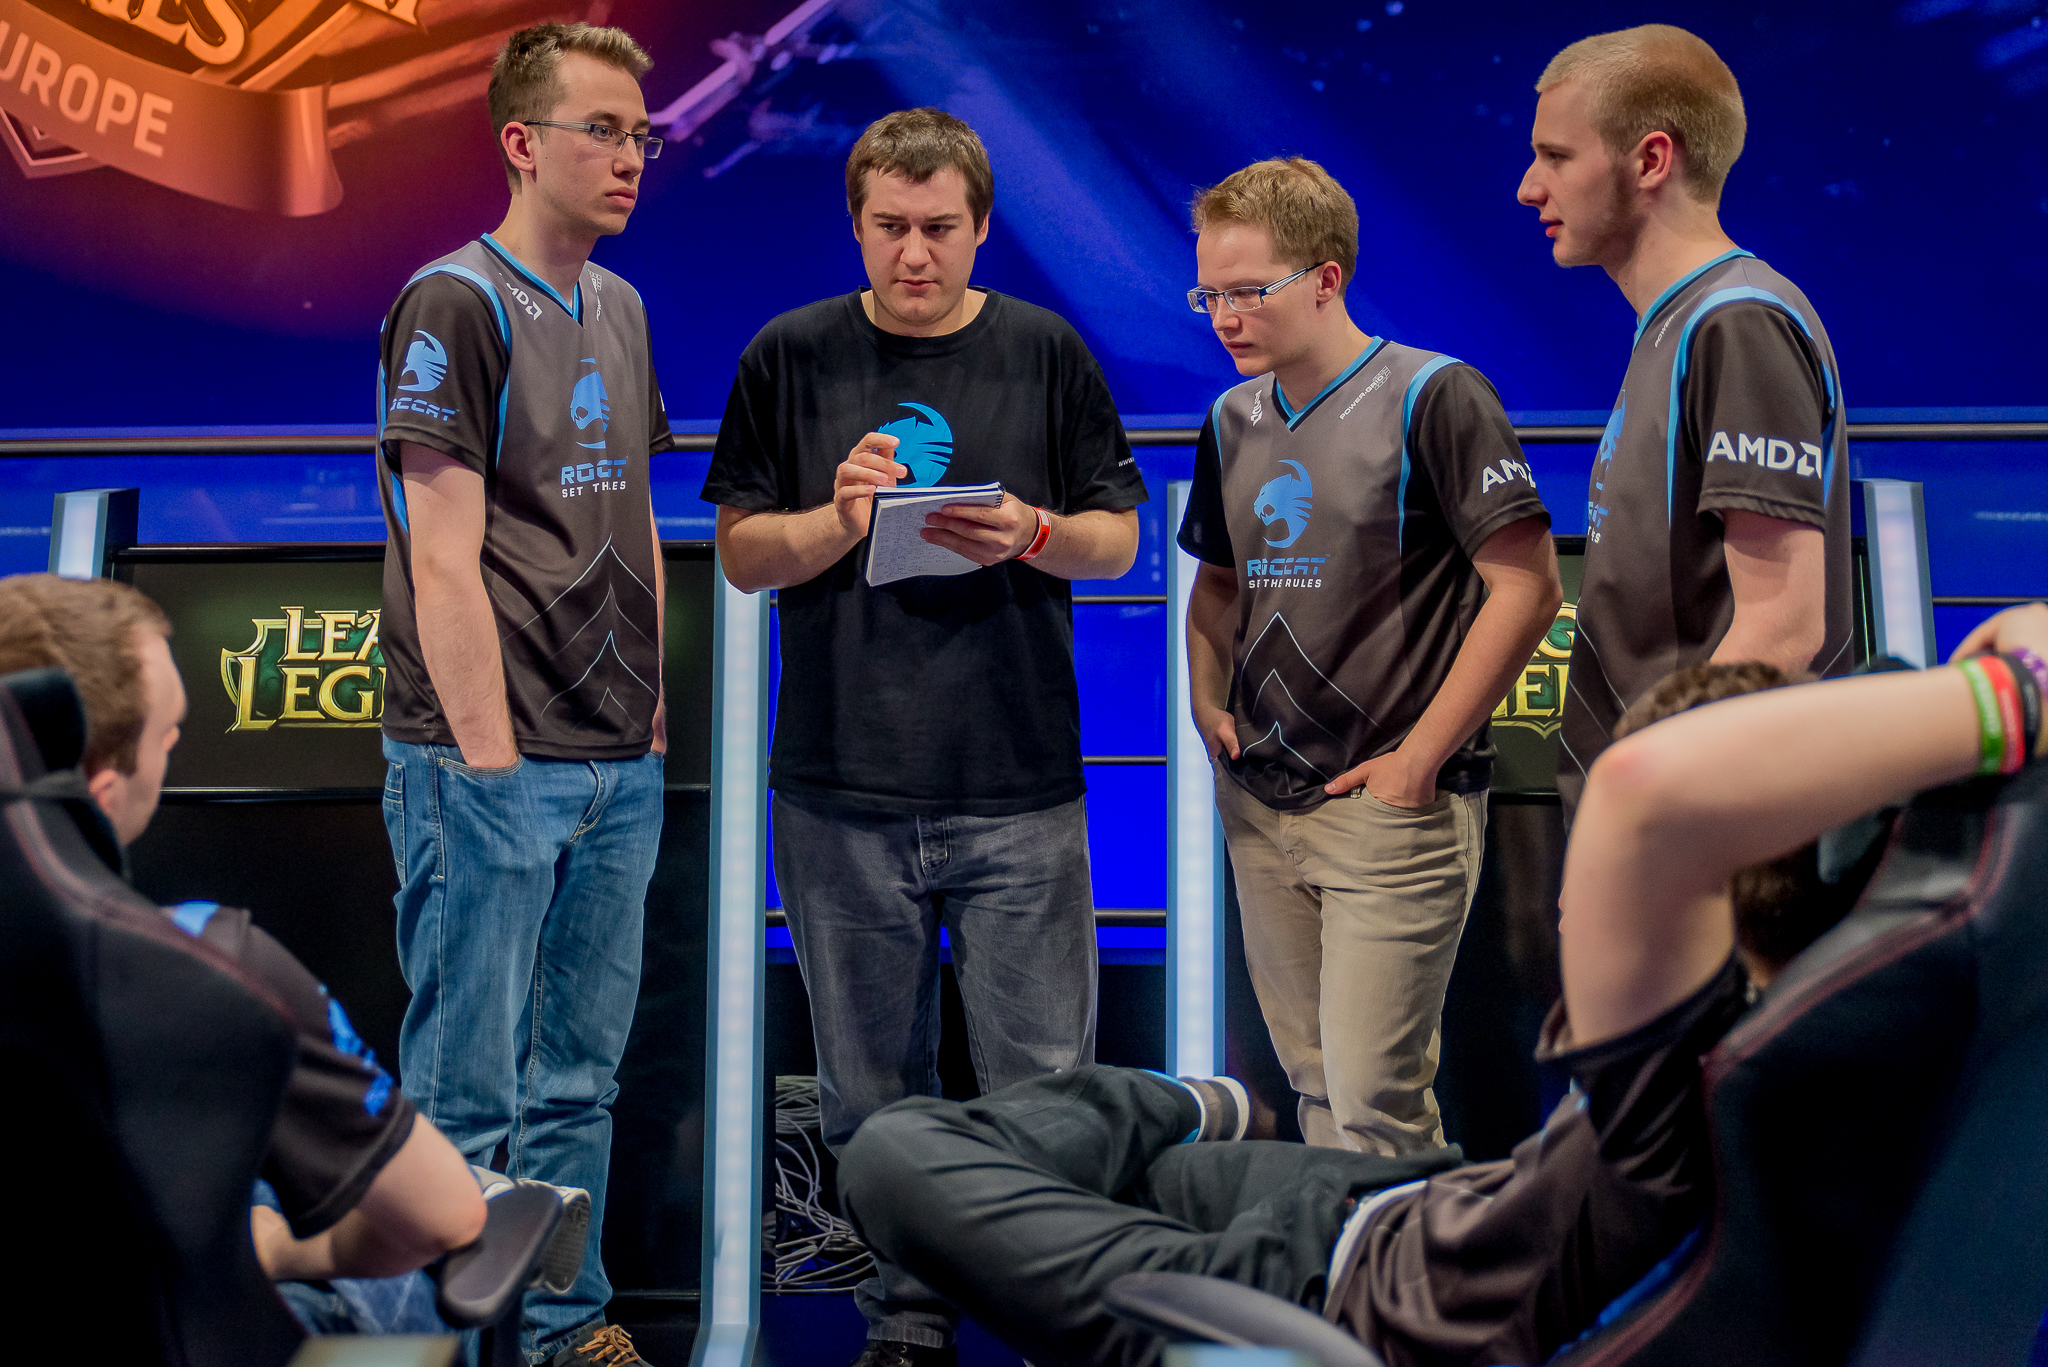 ROCCAT's analyst helping the team prepare for the next game in their epic series against Fnatic at Gamescom 2014.  source